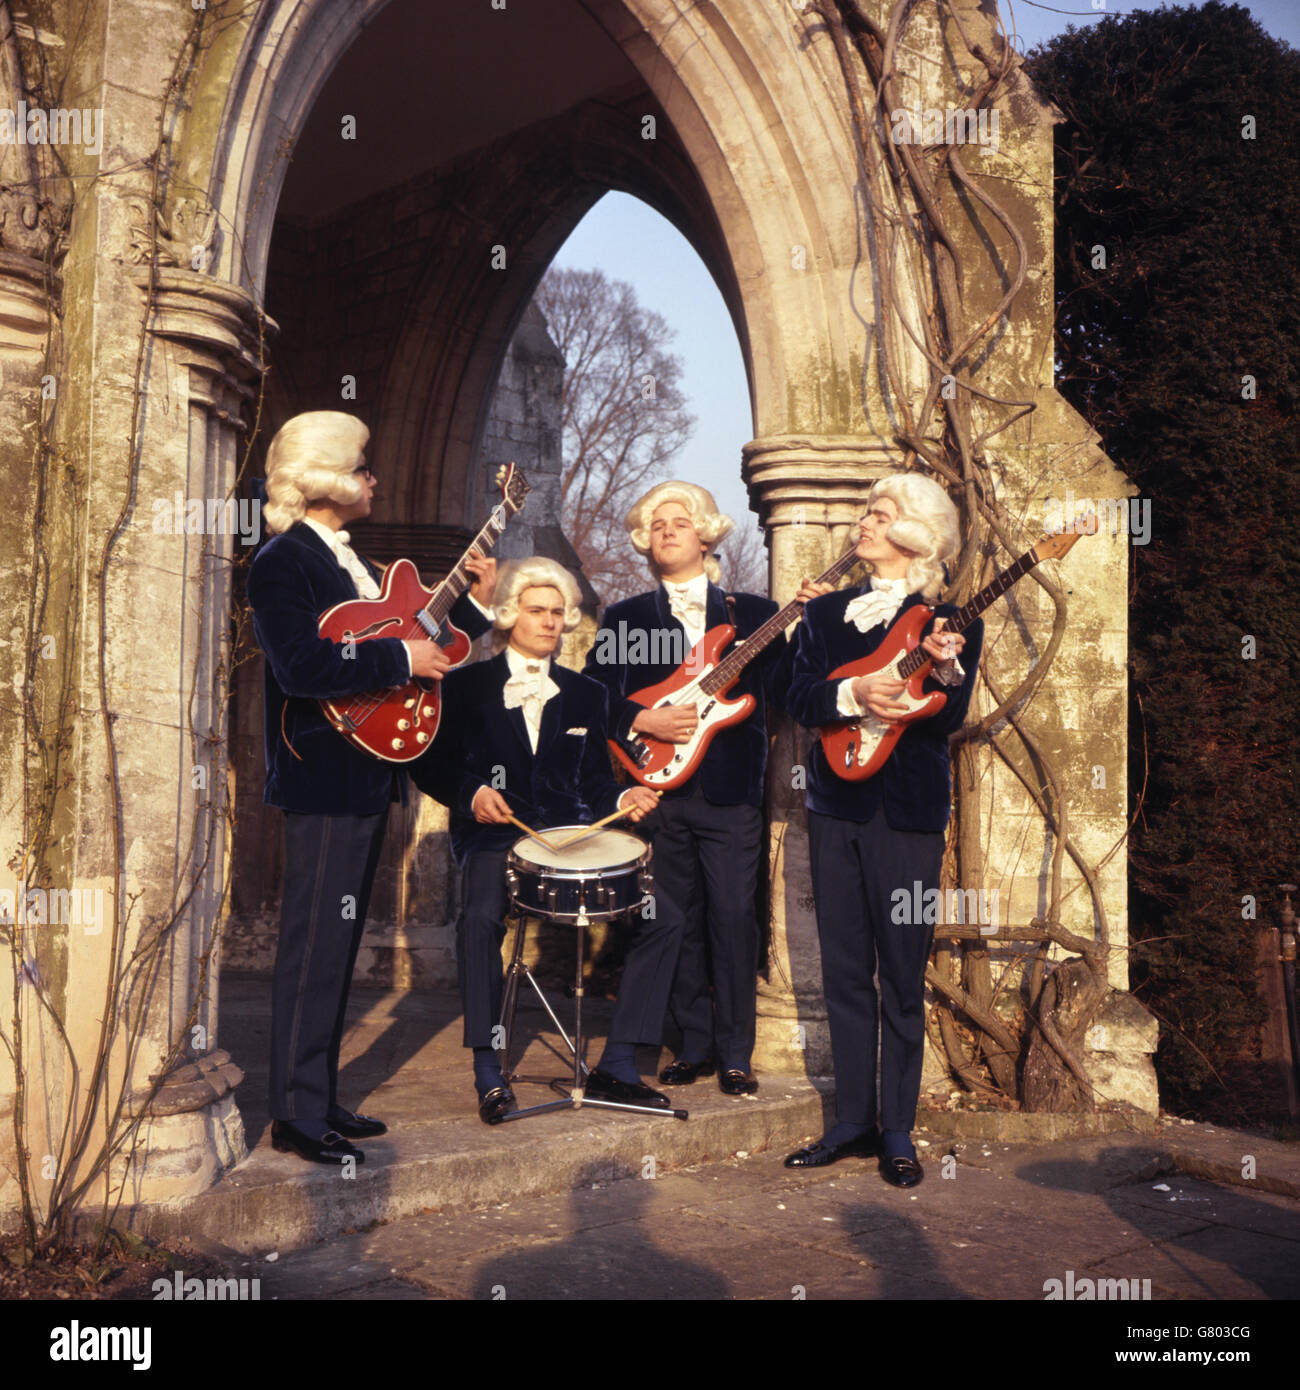 Music - The Snobs - Medmenham Abbey, Marlow Stock Photo